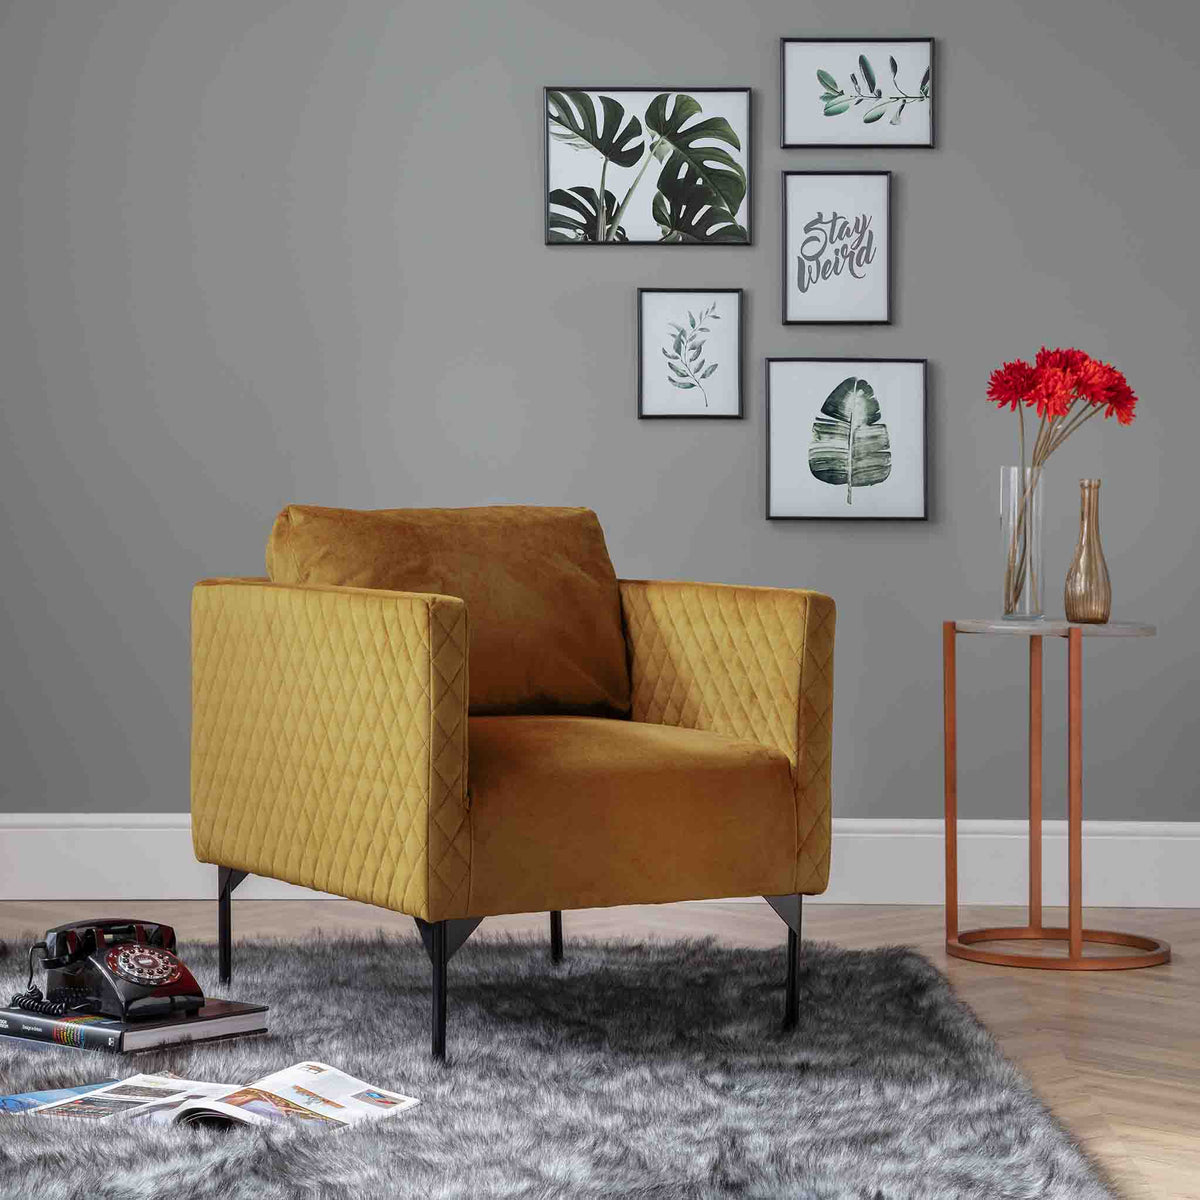 Bali Gold Velvet Accent Chair lifestyle image